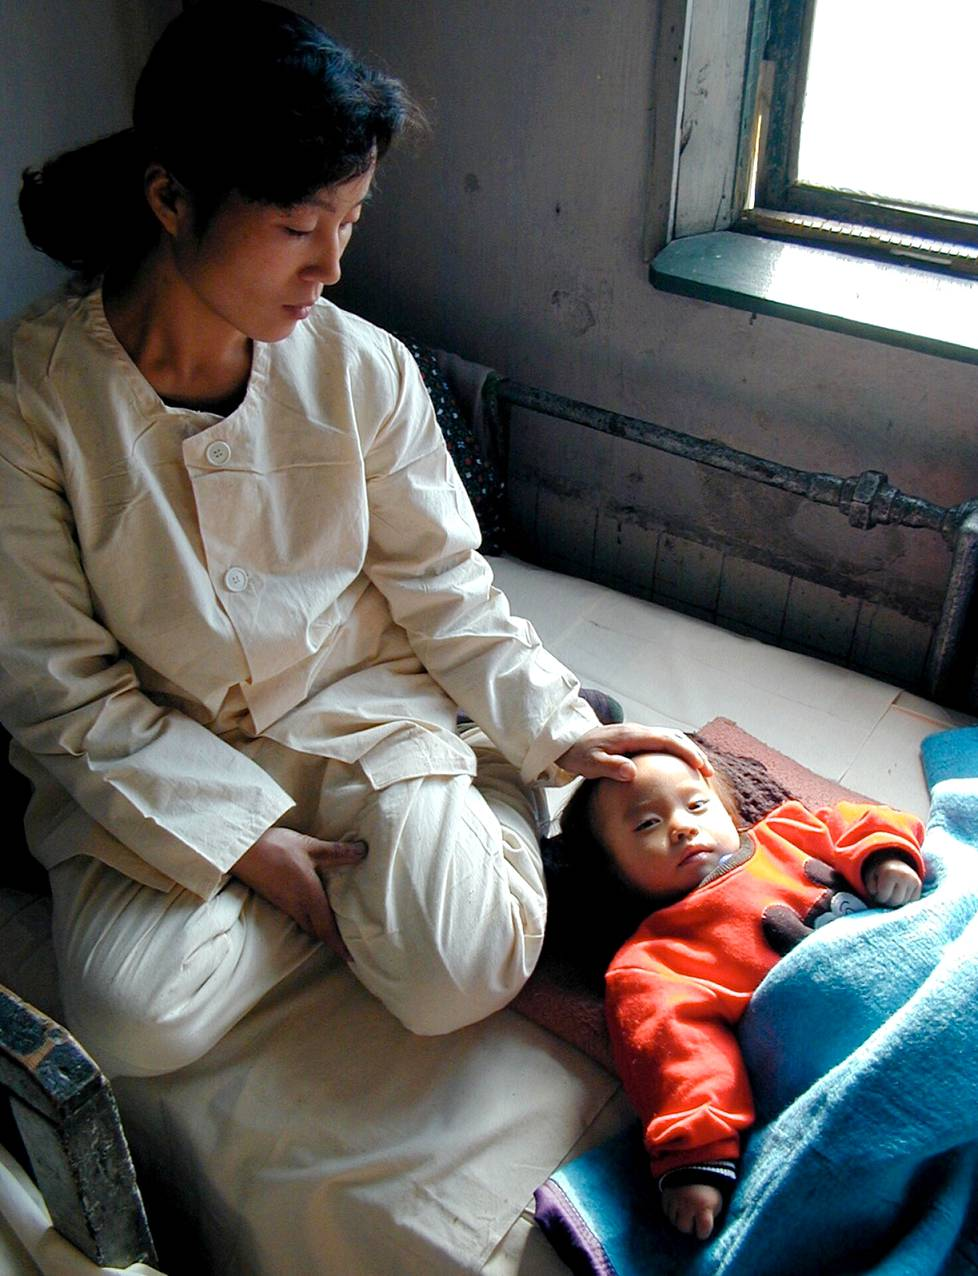 The mother stroked her malnourished child in December 1999, when North Korea was suffering from a severe famine.  The current difficult situation is believed to affect children and other vulnerable sections of the population in particular.